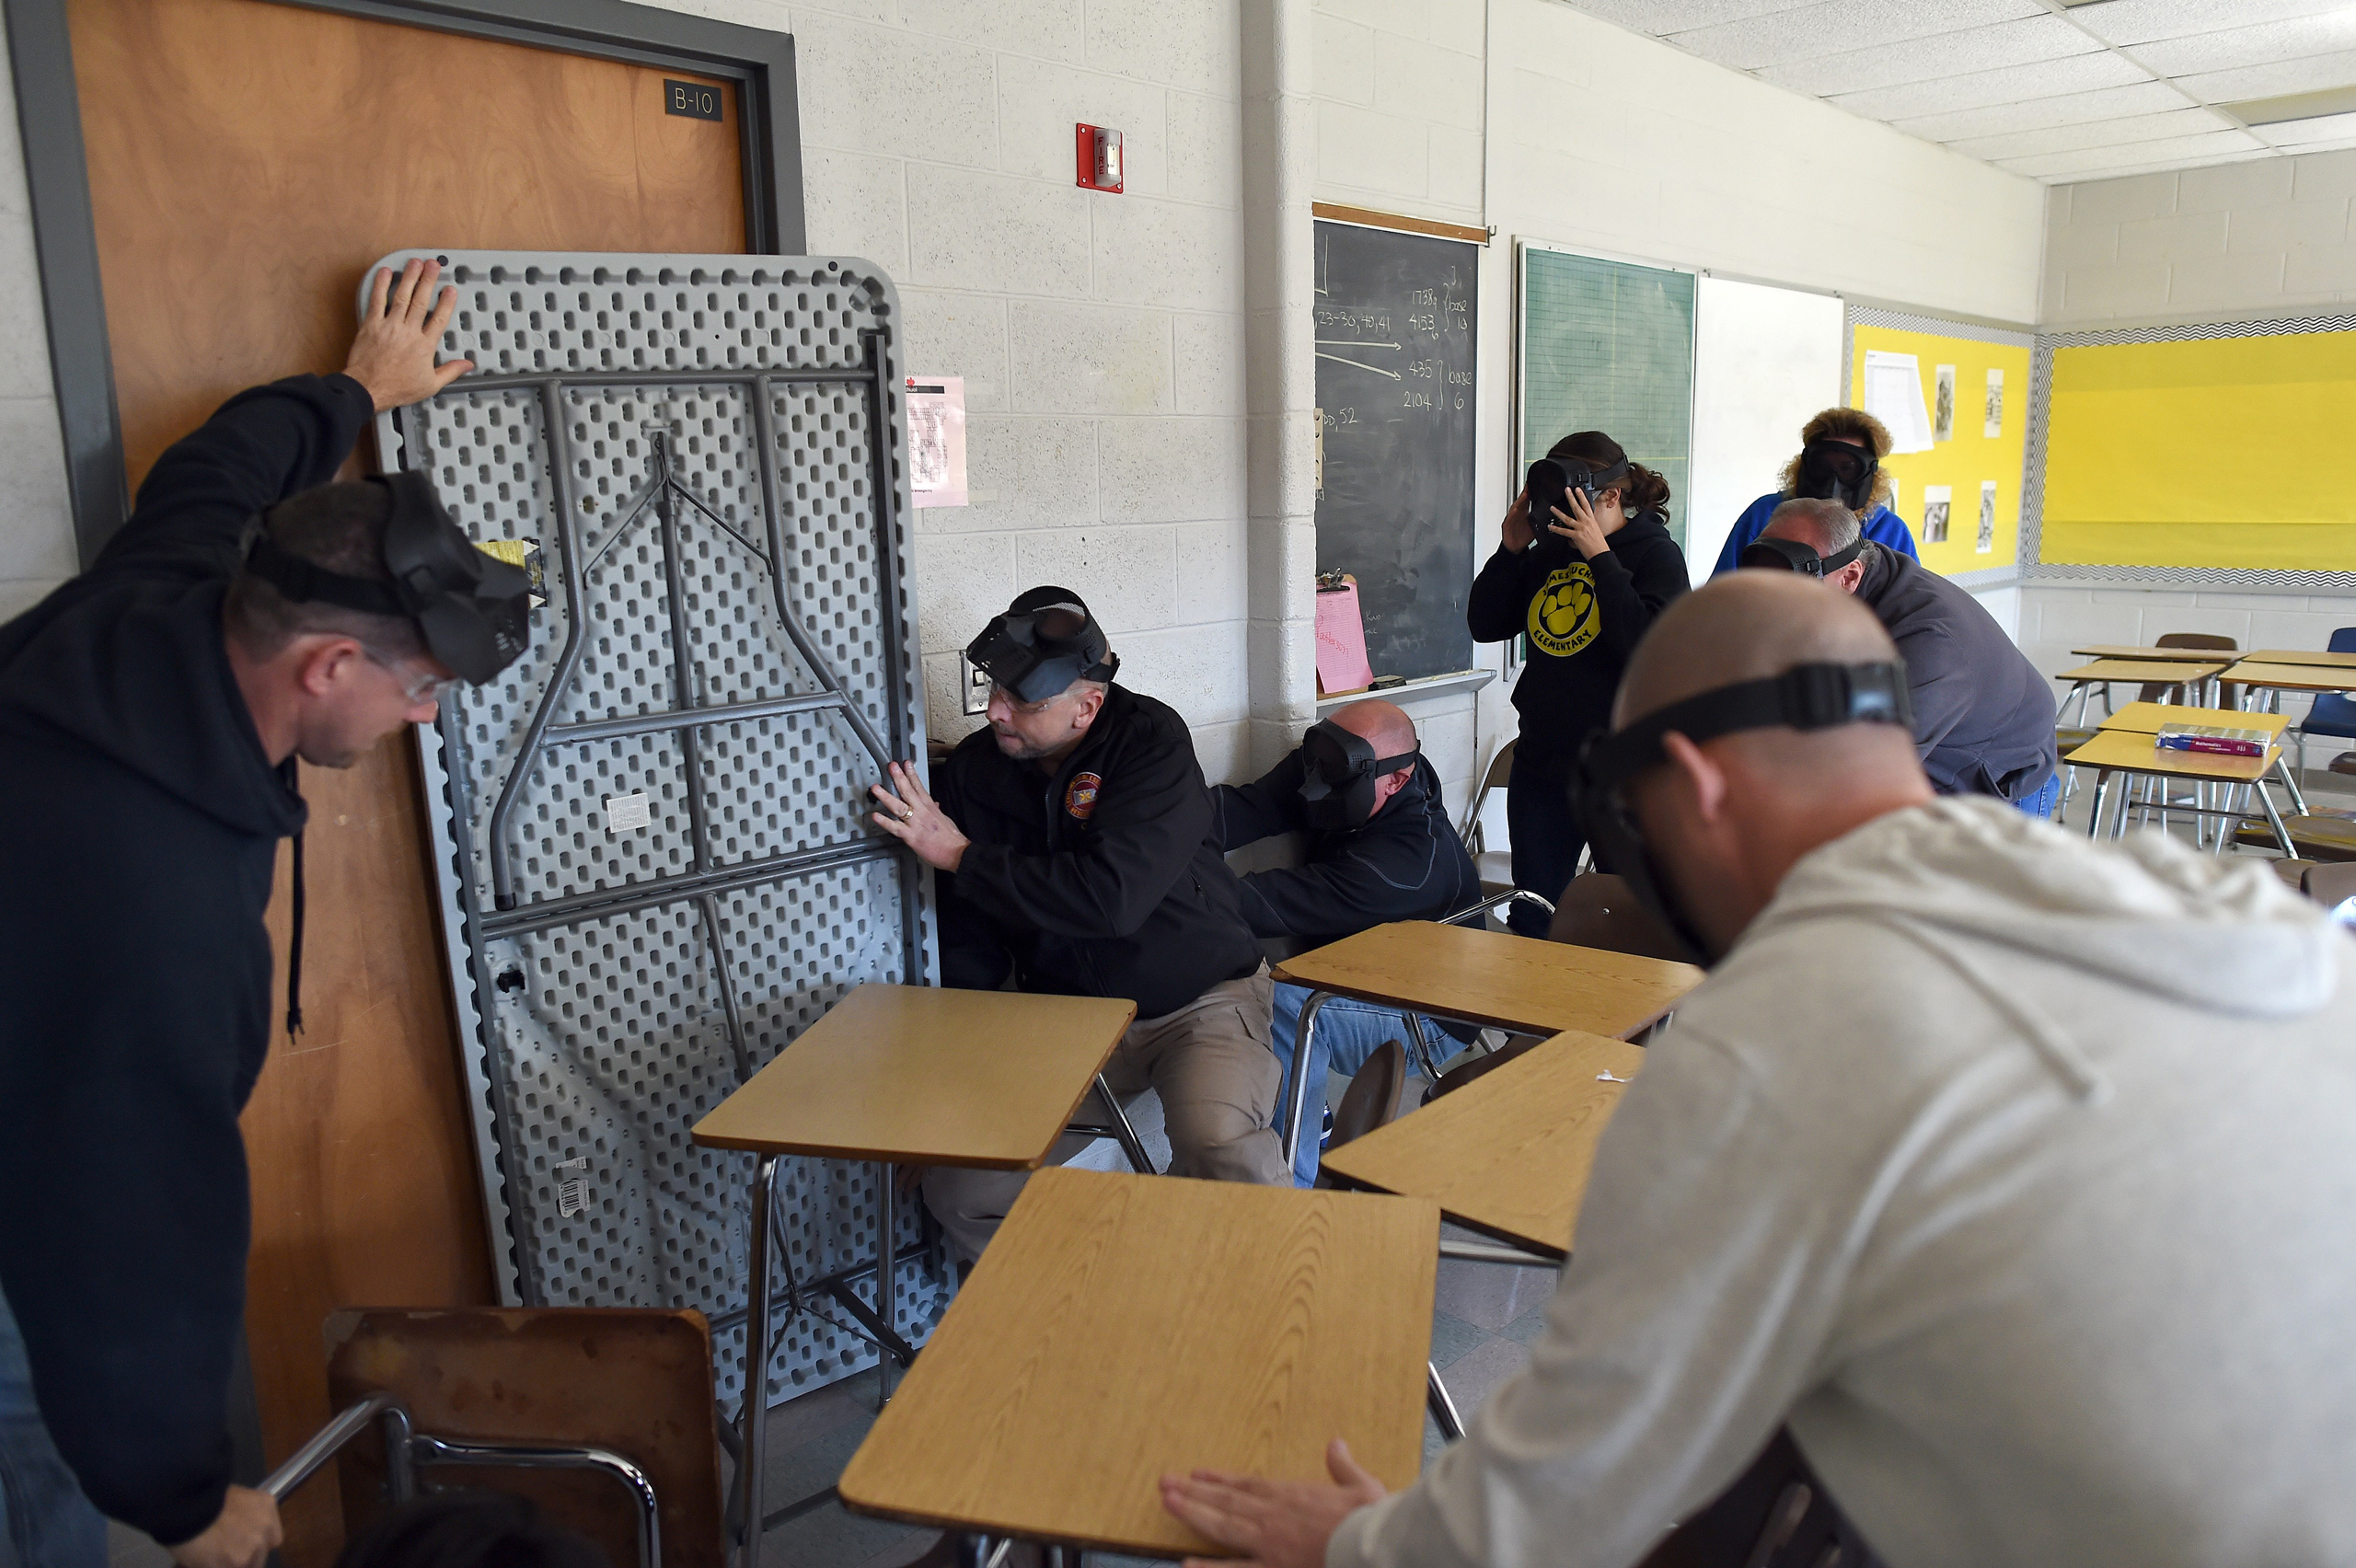 Participants barricade a door of a classroom to block an  active shooter  during ALICE (Alert, Lockdown, Inform, Counter and Evacuate) training at the Harry S. Truman High School in Levittown, Pennsylvania, on Nov. 3, 2015.